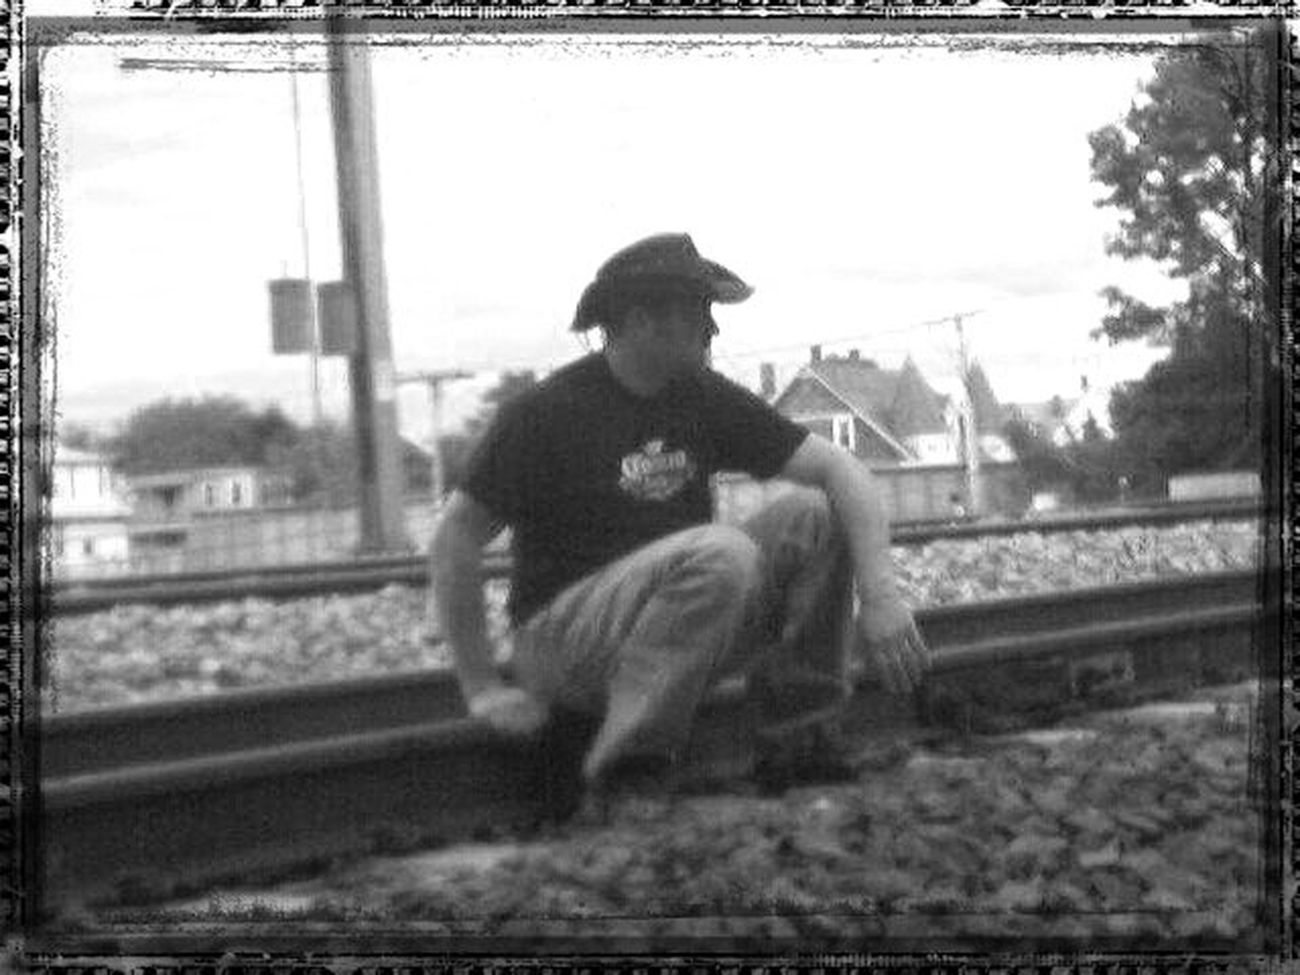 Traintracks Cowboy Summer Sumer Love  Tracks Summertime